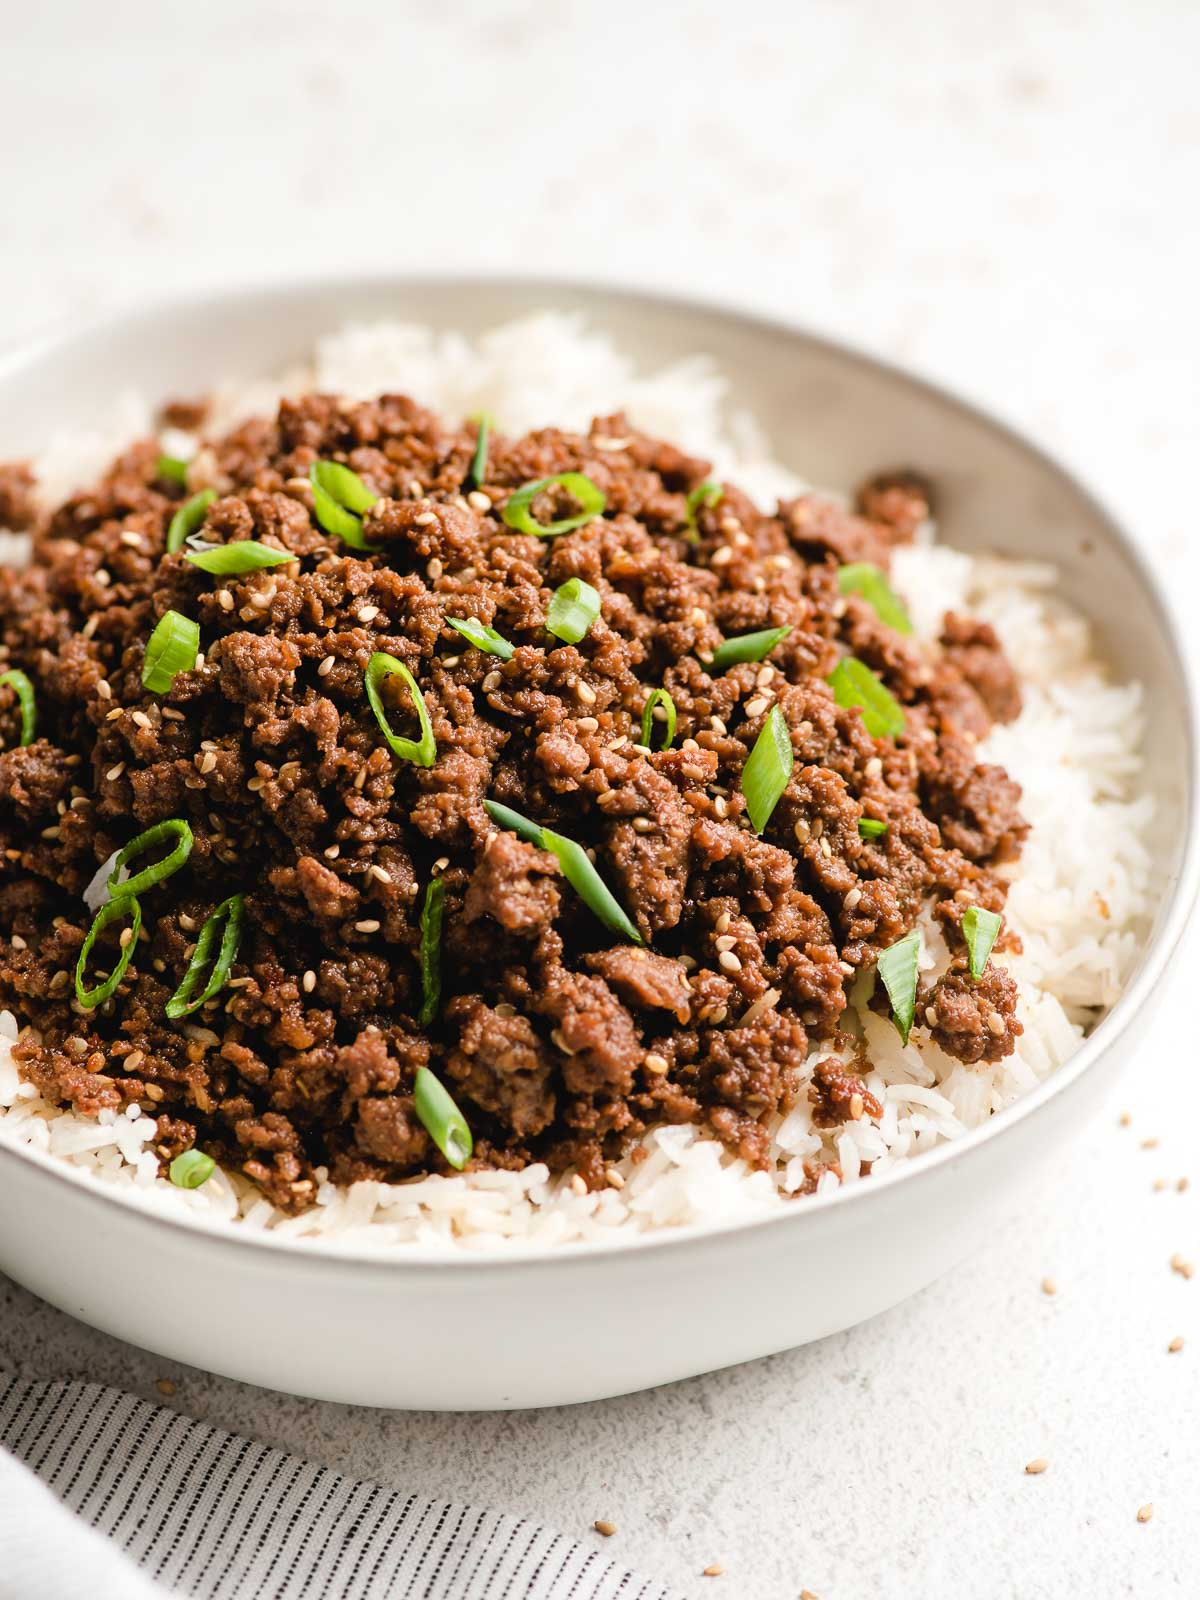 Ground beef bulgogi topped with sliced green onions in a white bowl.